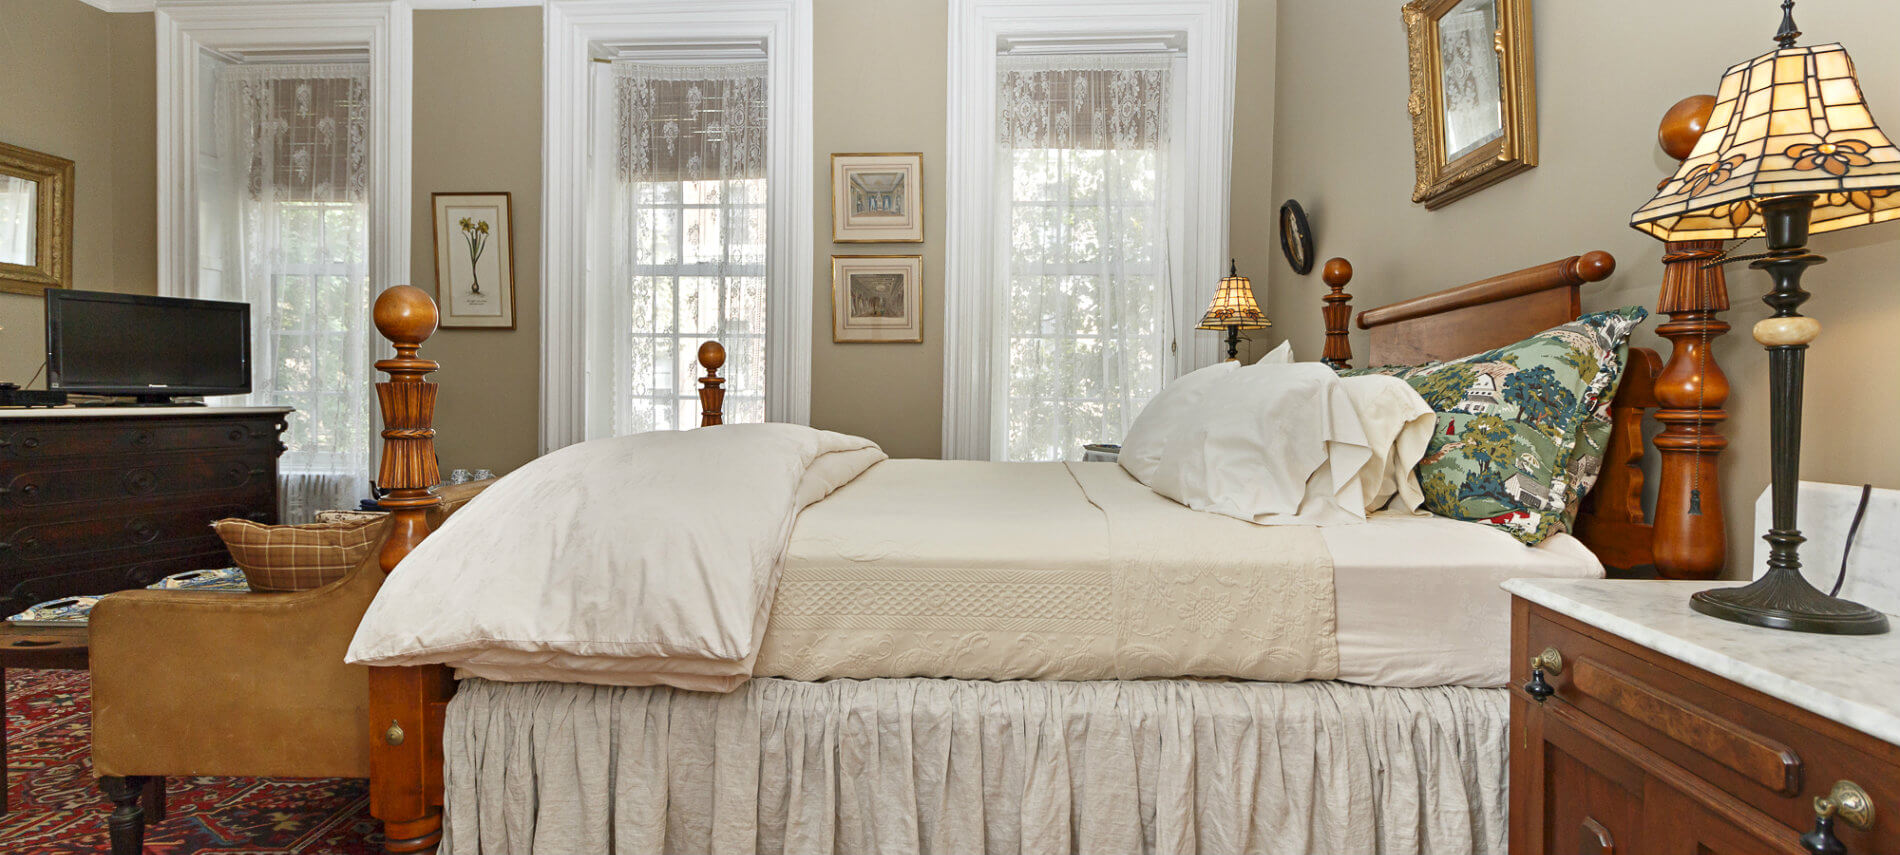 Soft beige walls with double large windows with white trim in room with large wood bed with soft cream linens and side table with small lamp